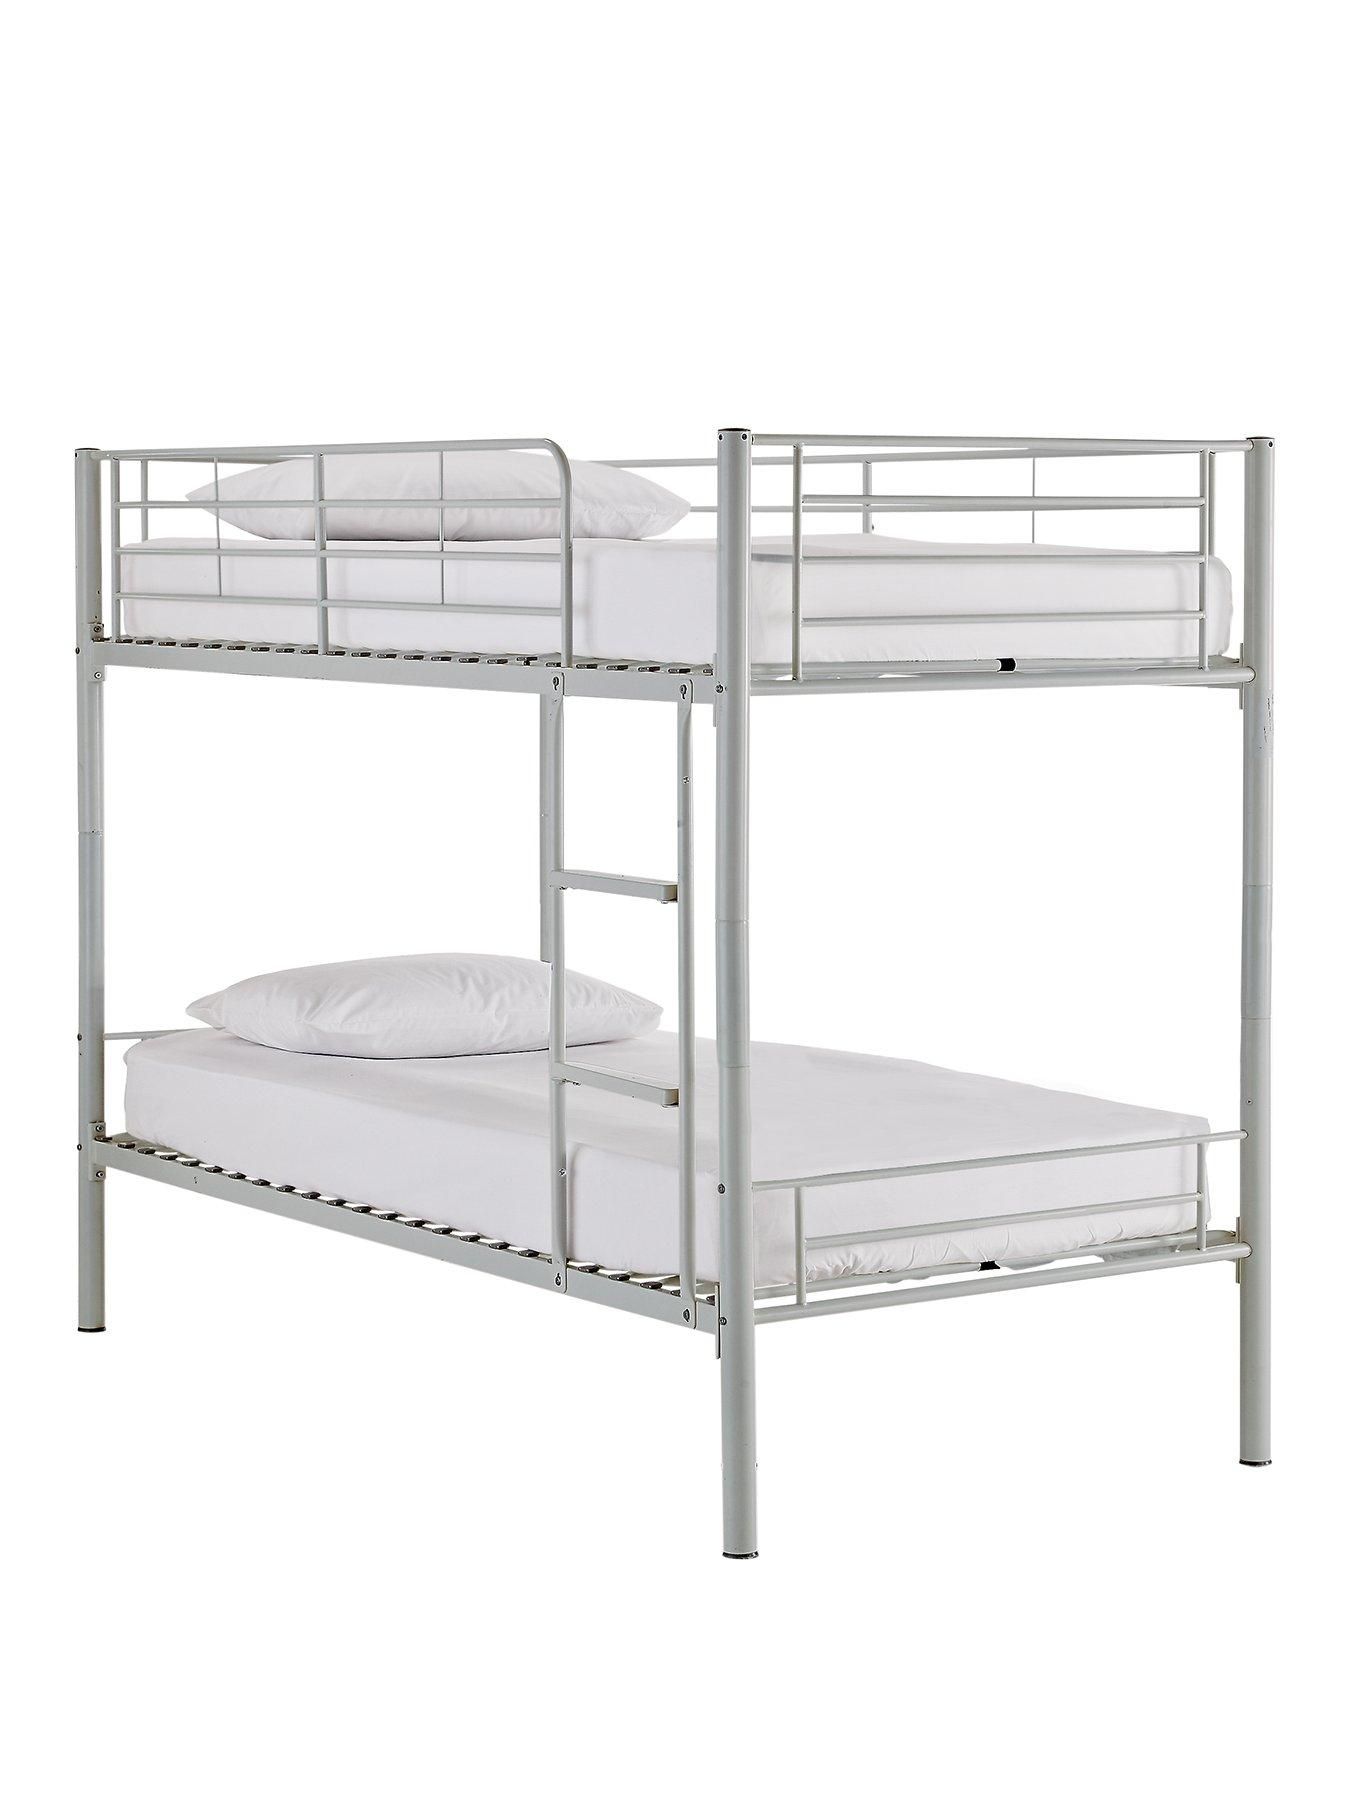 White Metal Bunk Beds Cheaper Than Retail Price Buy Clothing Accessories And Lifestyle Products For Women Men